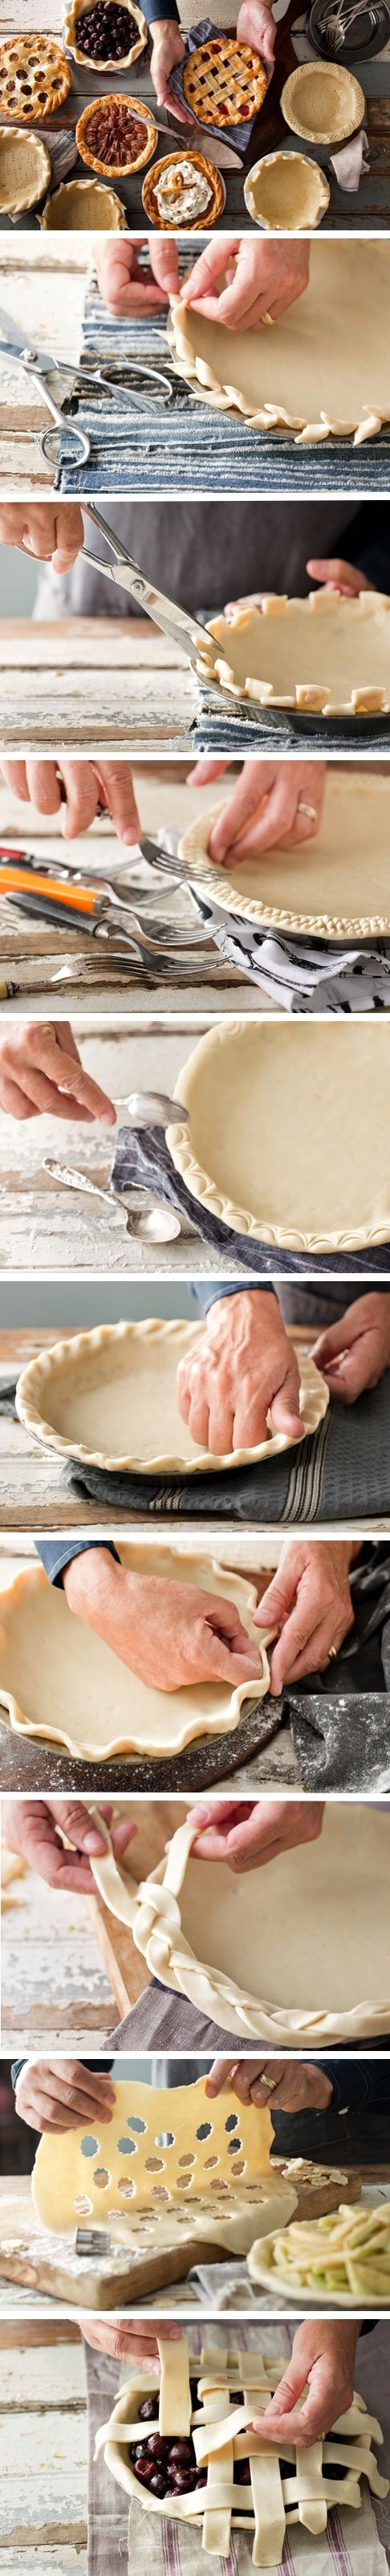 9 Pie Crust How-Tos (plus a two-minute video for even more variations)